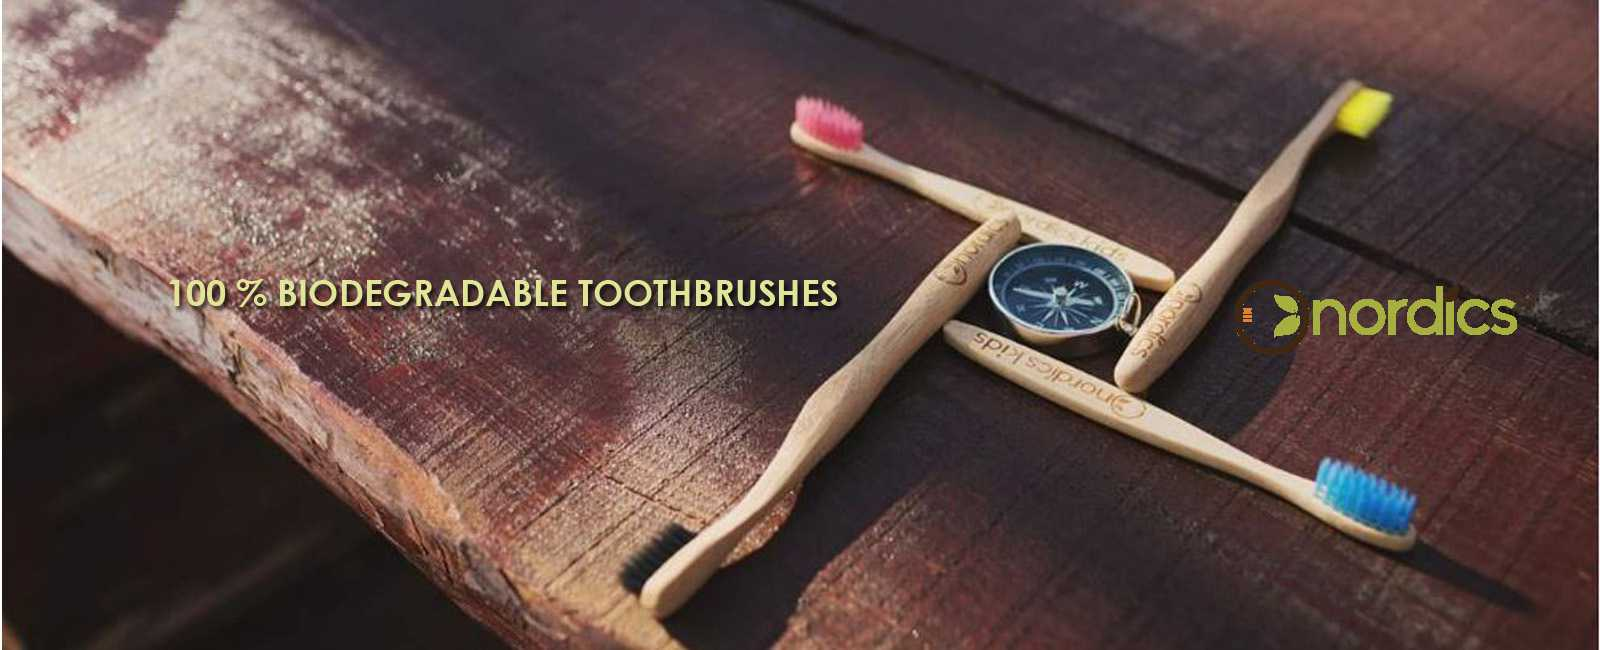 Nordics Biodegradable Toothbrushes